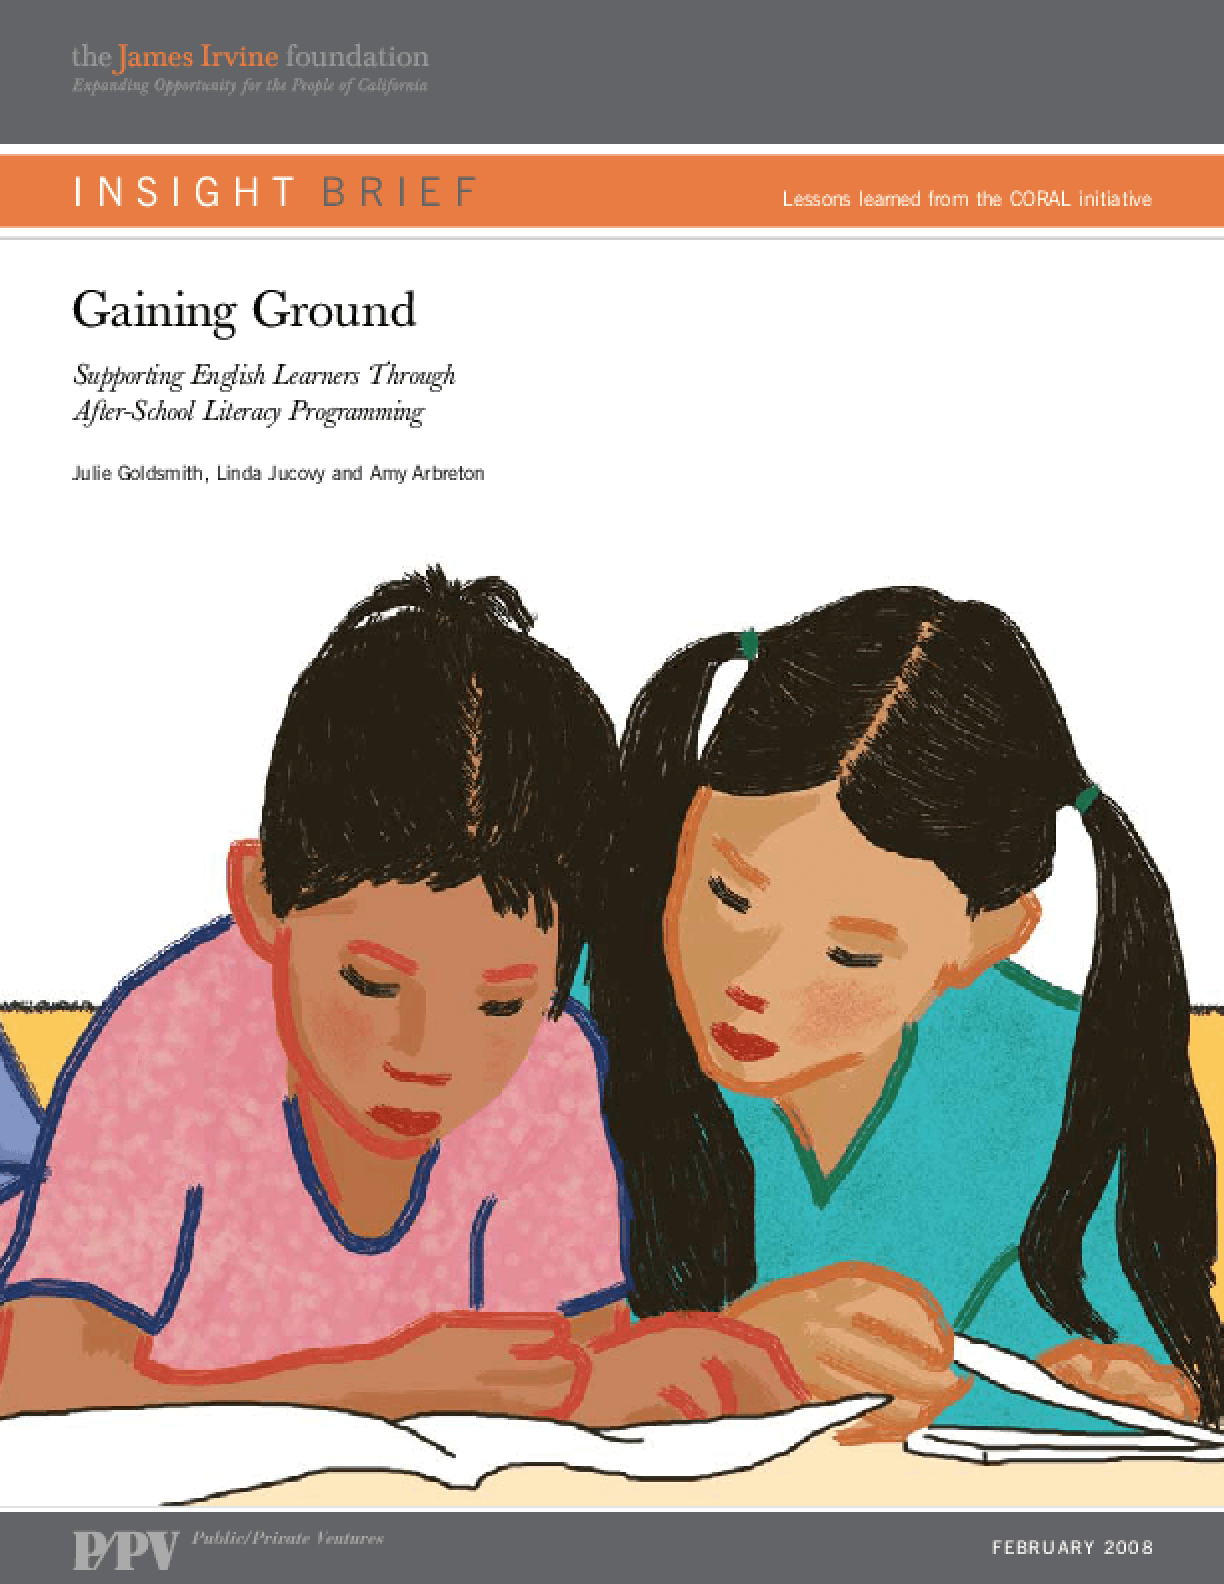 Gaining Ground: Supporting English Learners Through After-School Literacy Programming